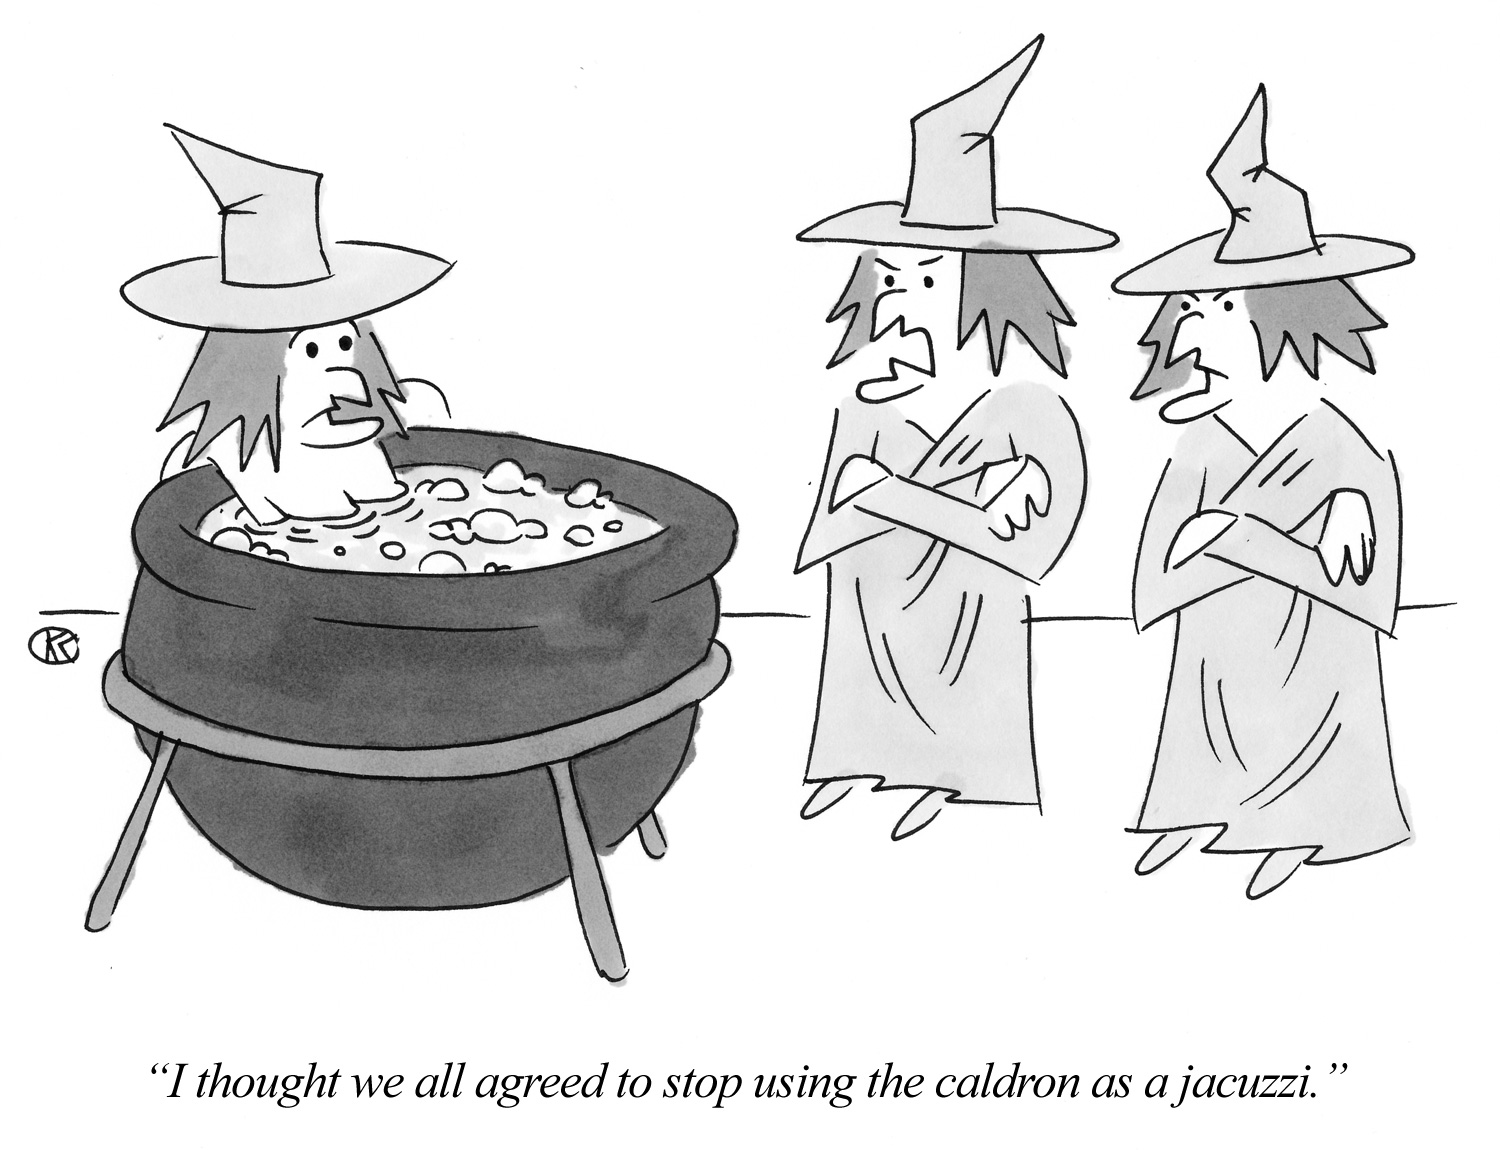 I thought we all agreed to stop using the caldron as a jacuzzi.